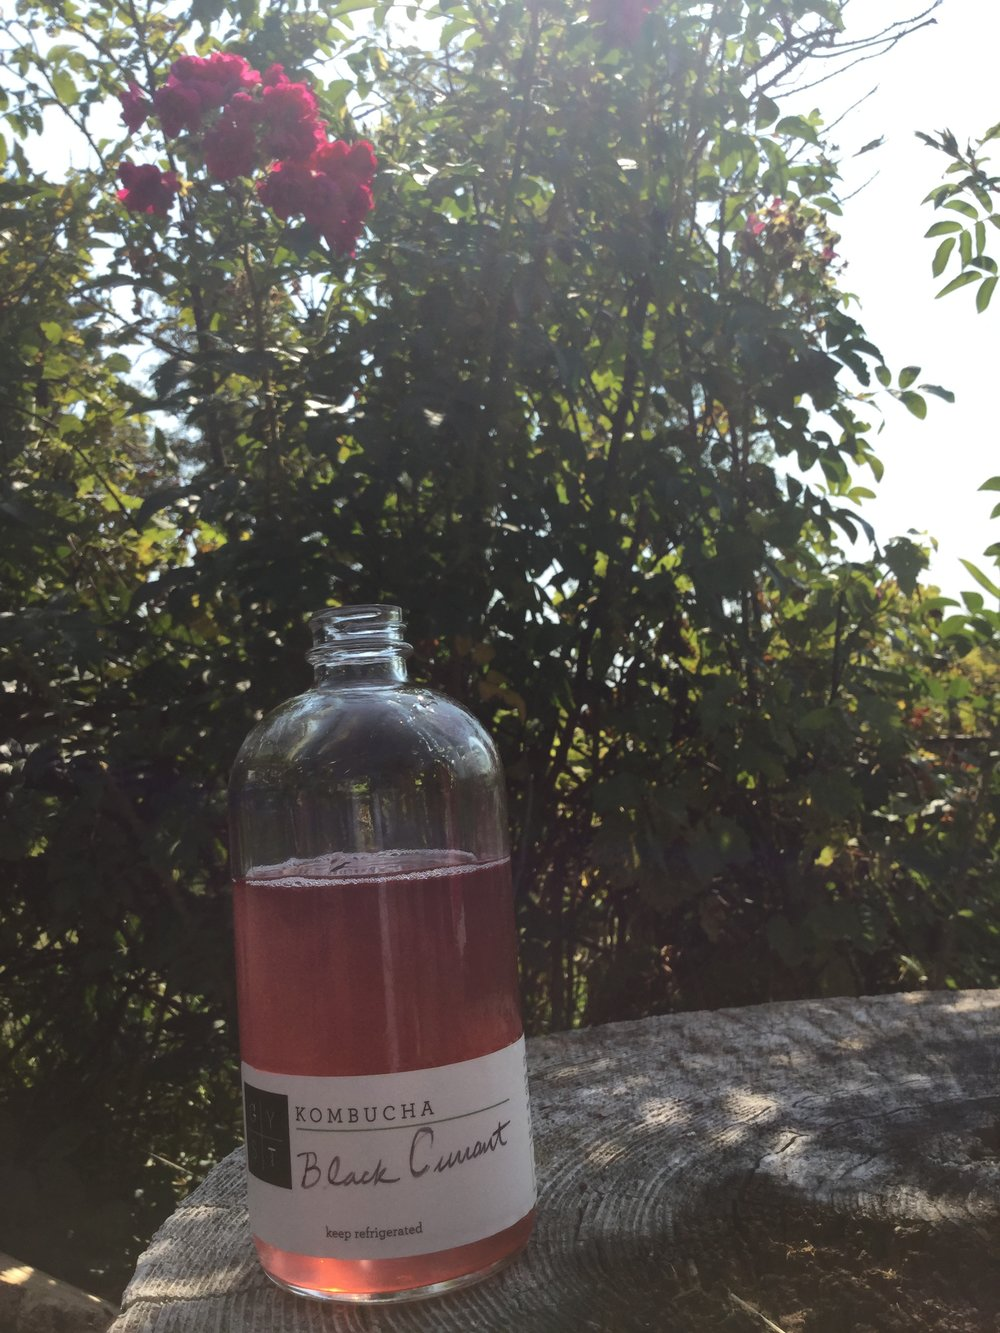 GYST black currant kombucha